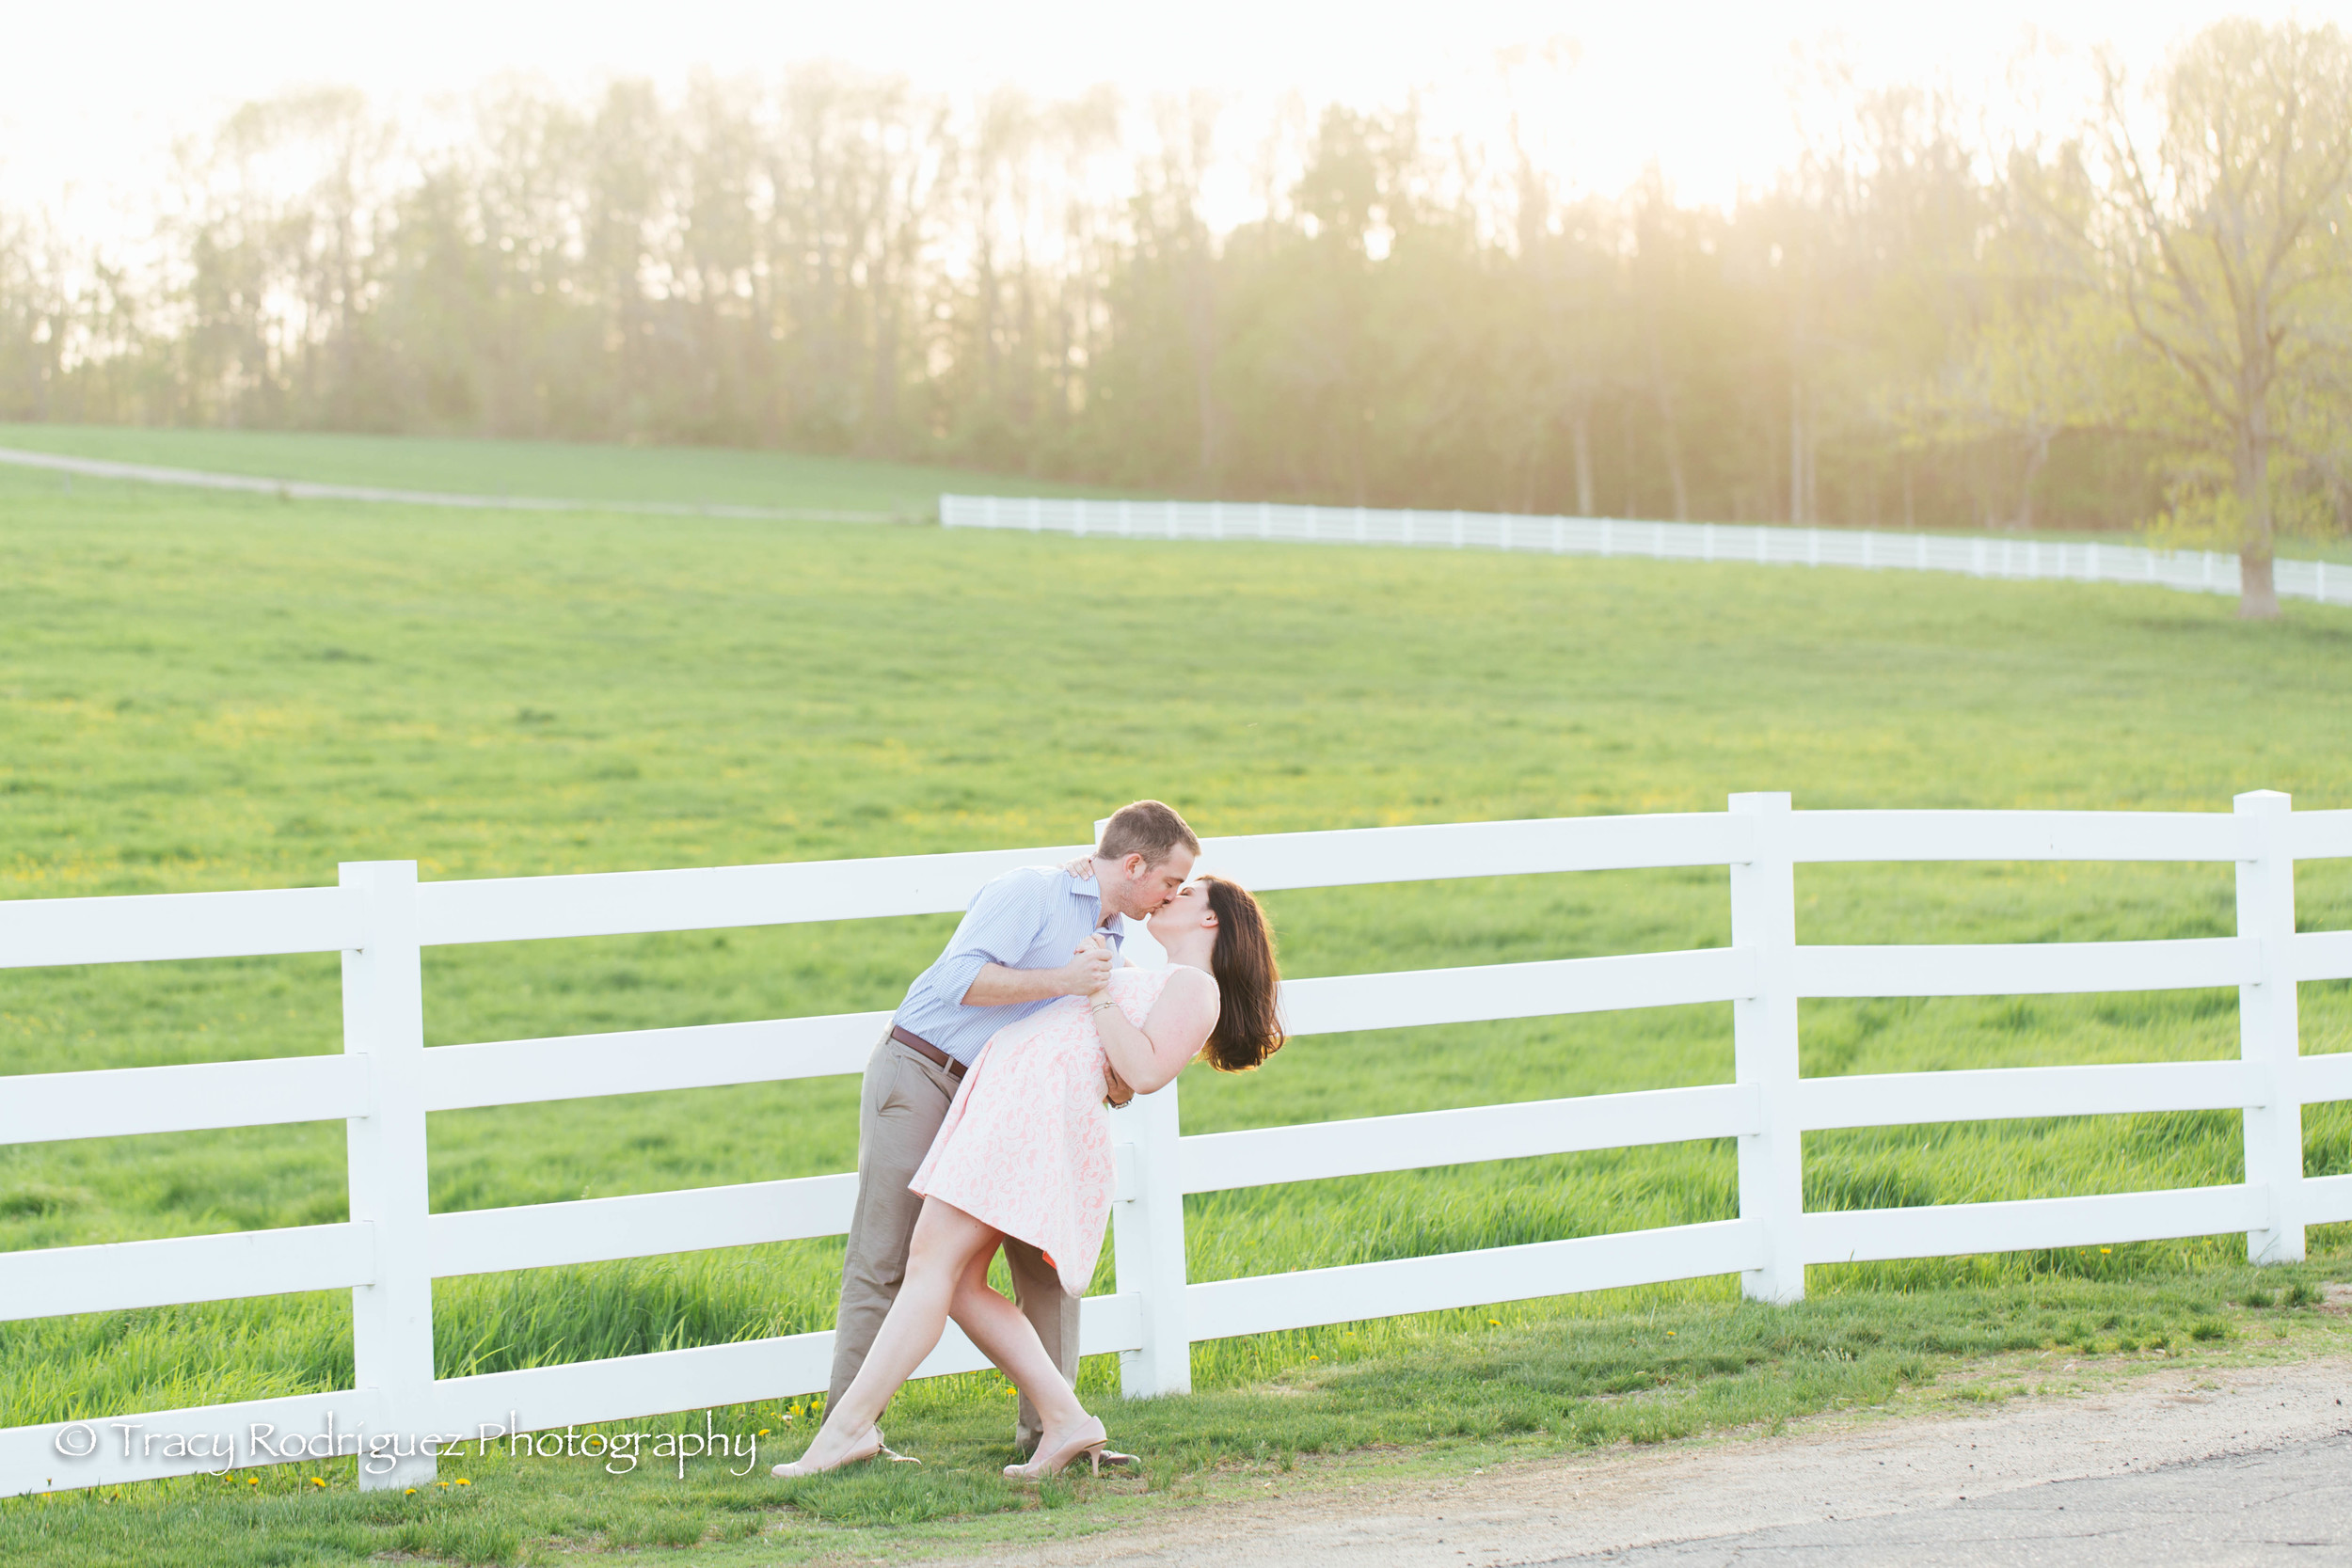 TracyRodriguezPhotography-LowRes-51.jpg